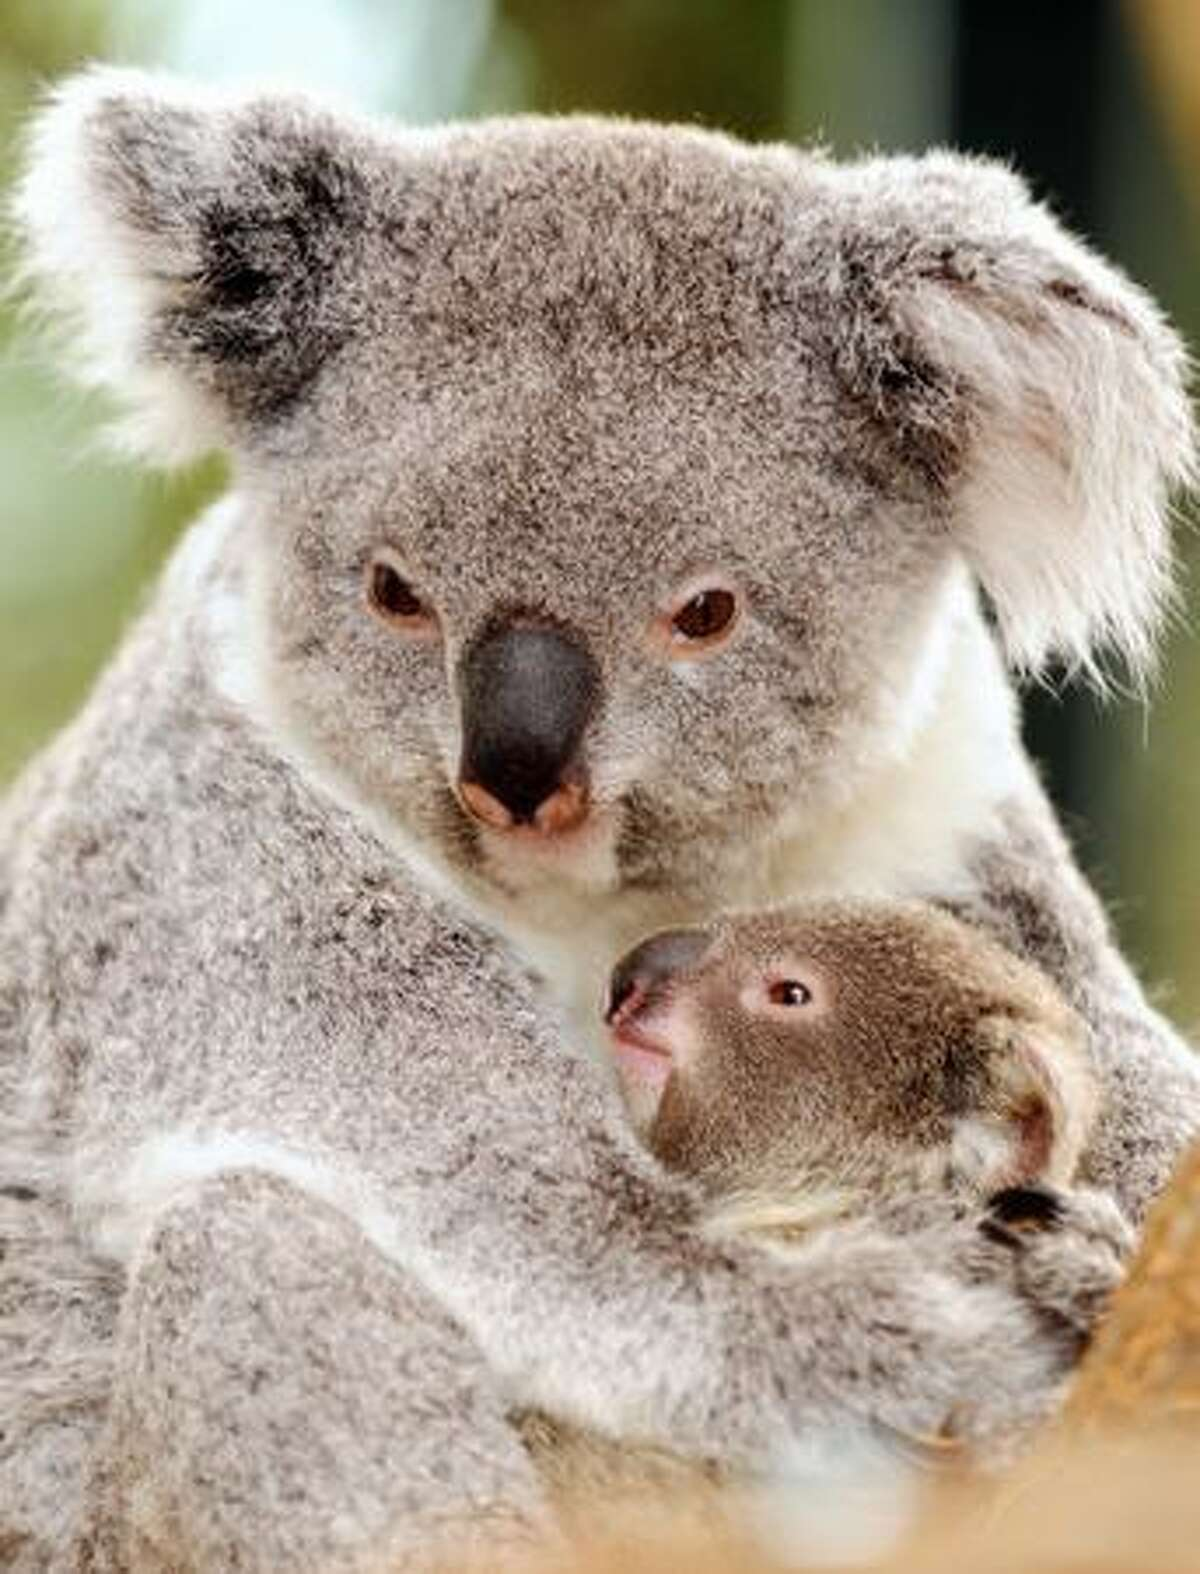 Picture taken at the Beauval zoo in Saint-Aignan, central France of Alkoomie, of a eight-month-old baby Koala, with her mother Alguna. It is the first birth of a baby koala in France.